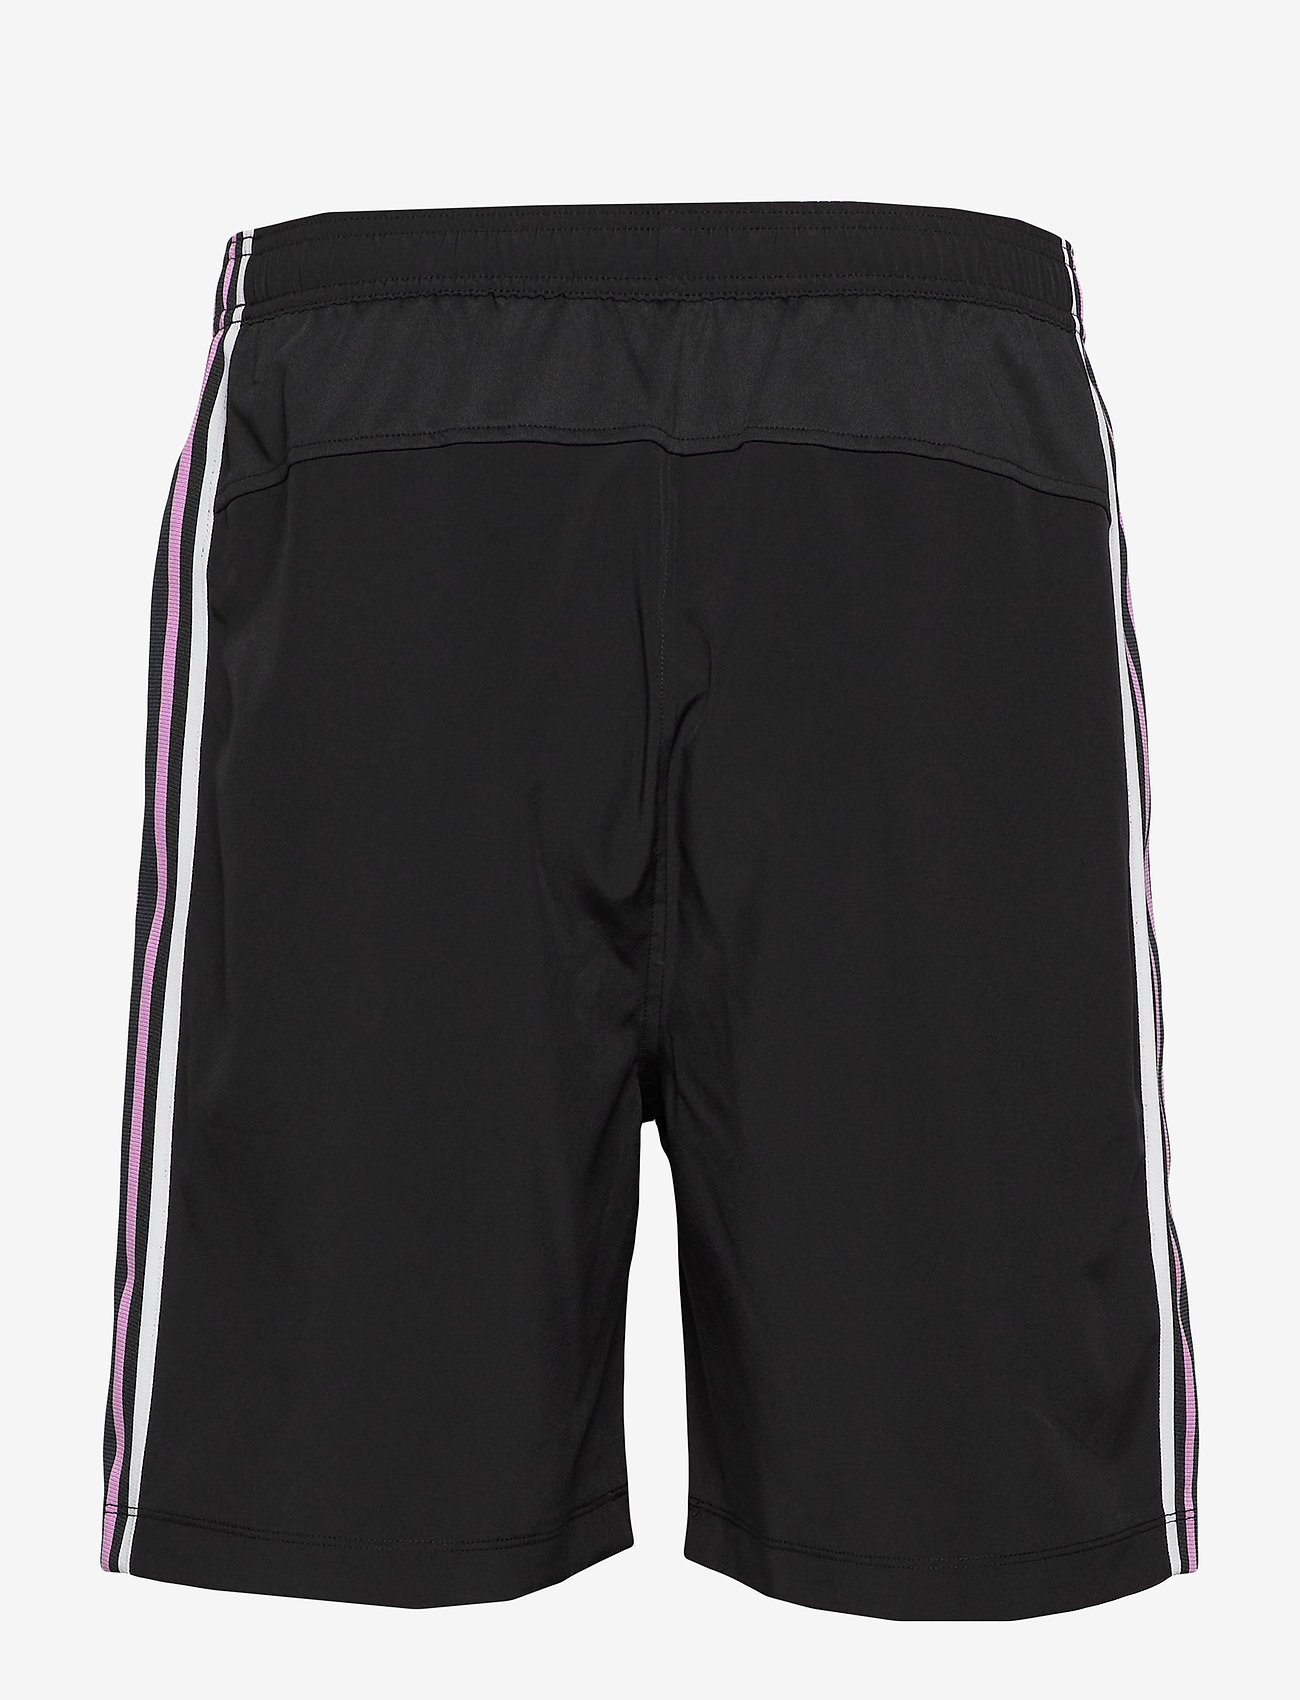 Björn Borg - SHORTS TABER TABER - chaussures de course - black beauty - 1